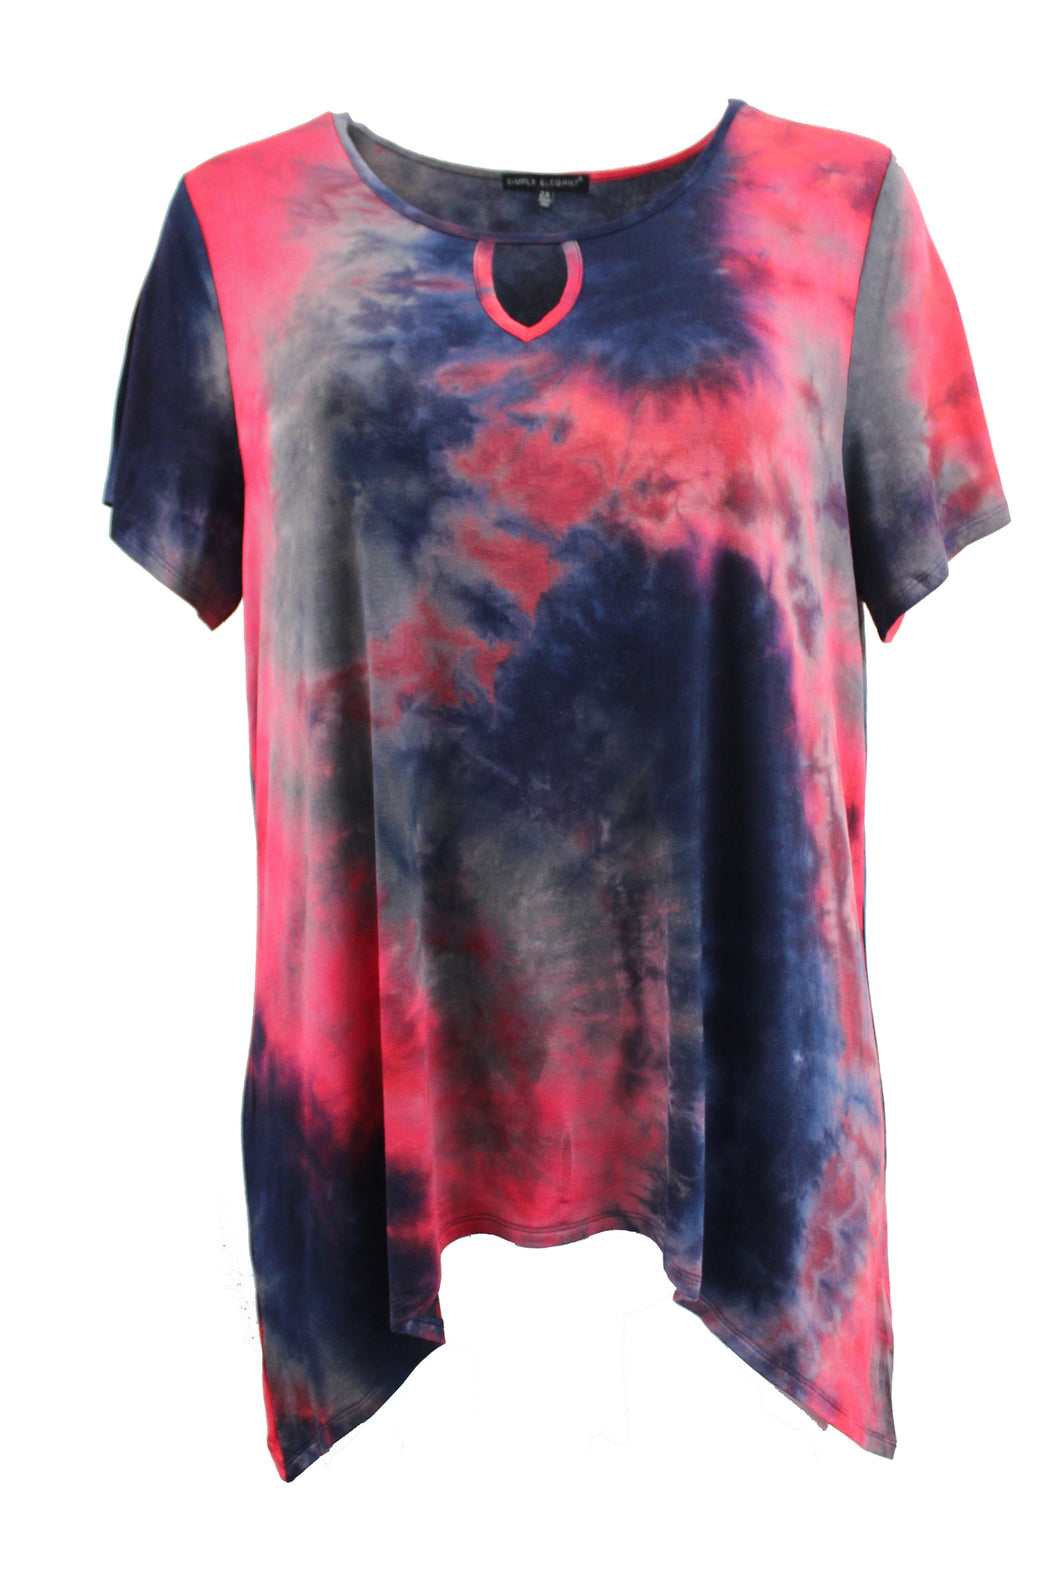 Navy/Red Tie-Dye Fashion Tee w/ Keyhole Front